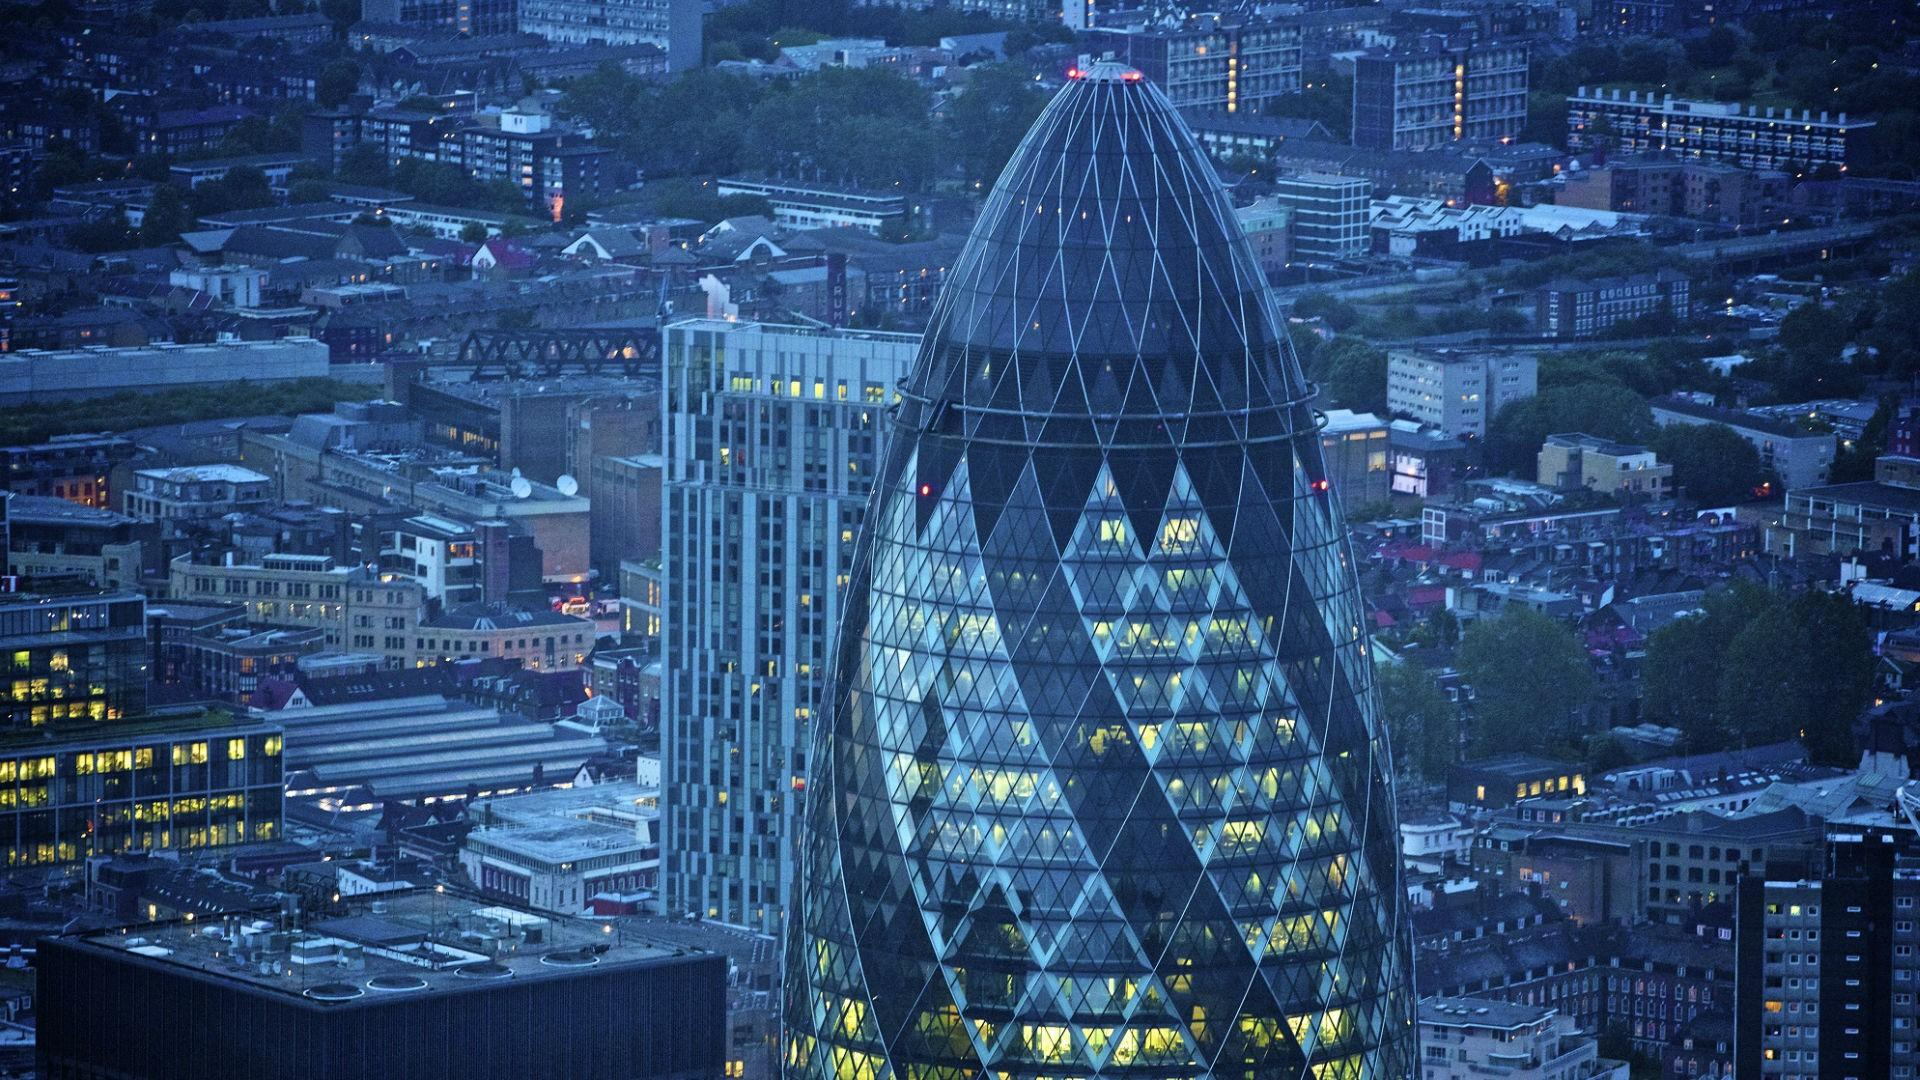 The Gherkin in London. People Builders also has an office in the London United Kingdom.